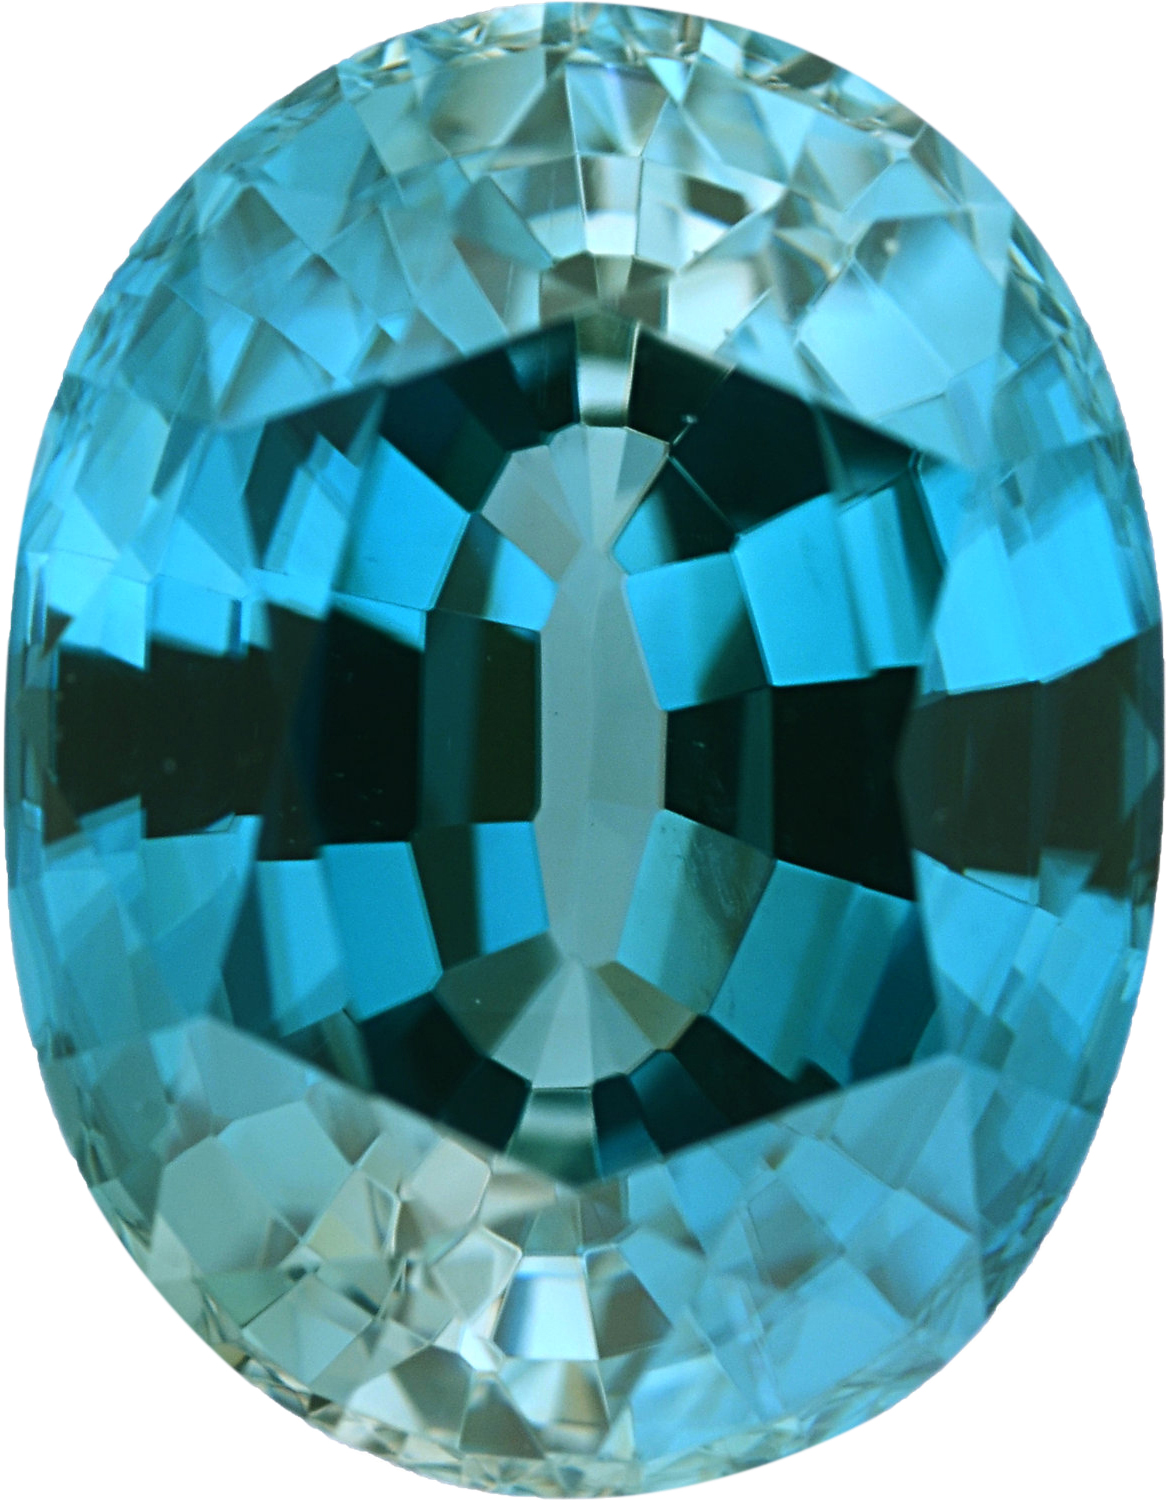 3.18 carats Oval Cut Genuine Zircon Gem, 8.98 x 7.05 mm